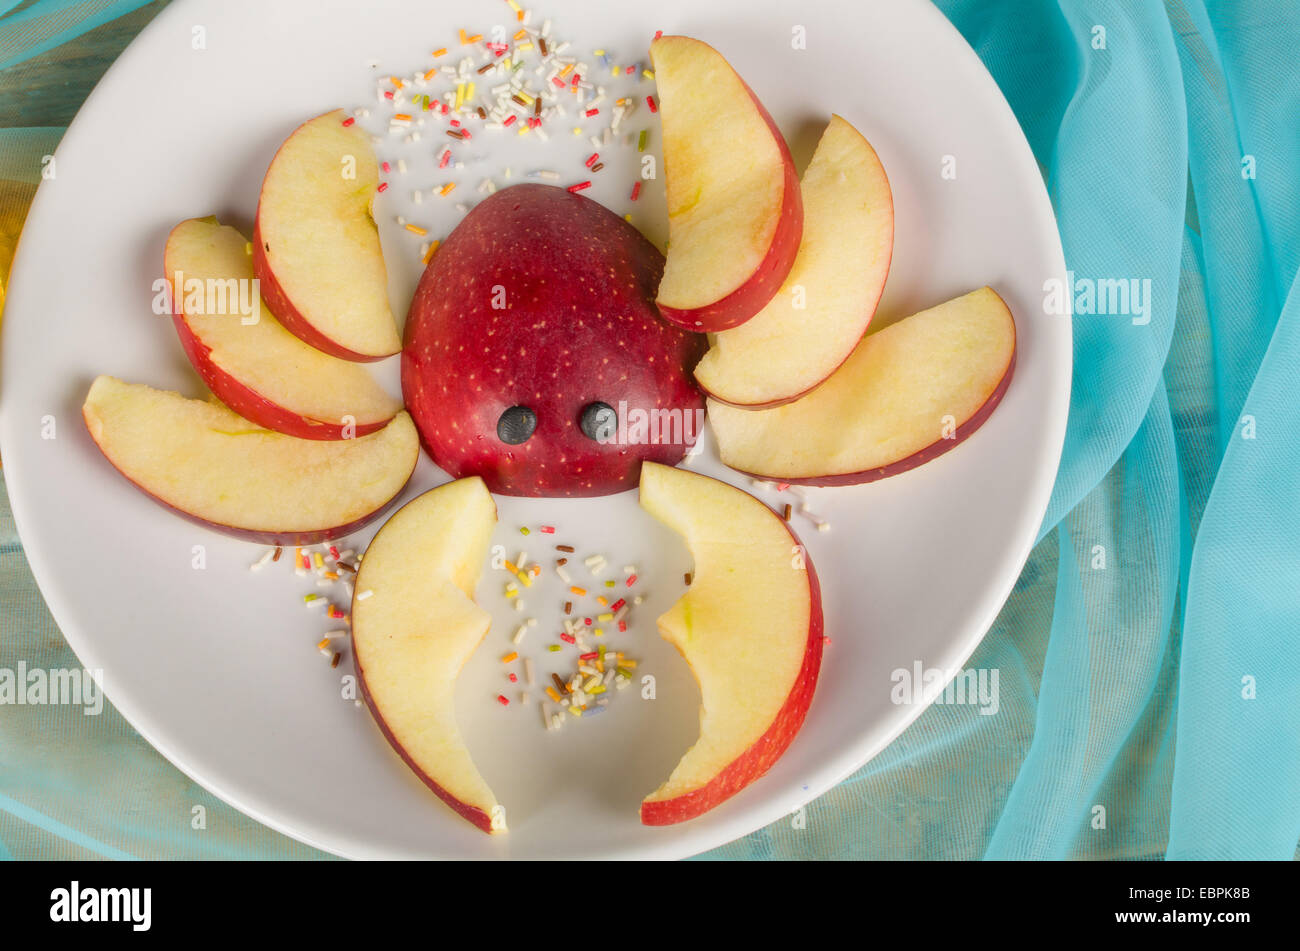 Fruity dessert in the shape of a crab, a creative dessert for ...